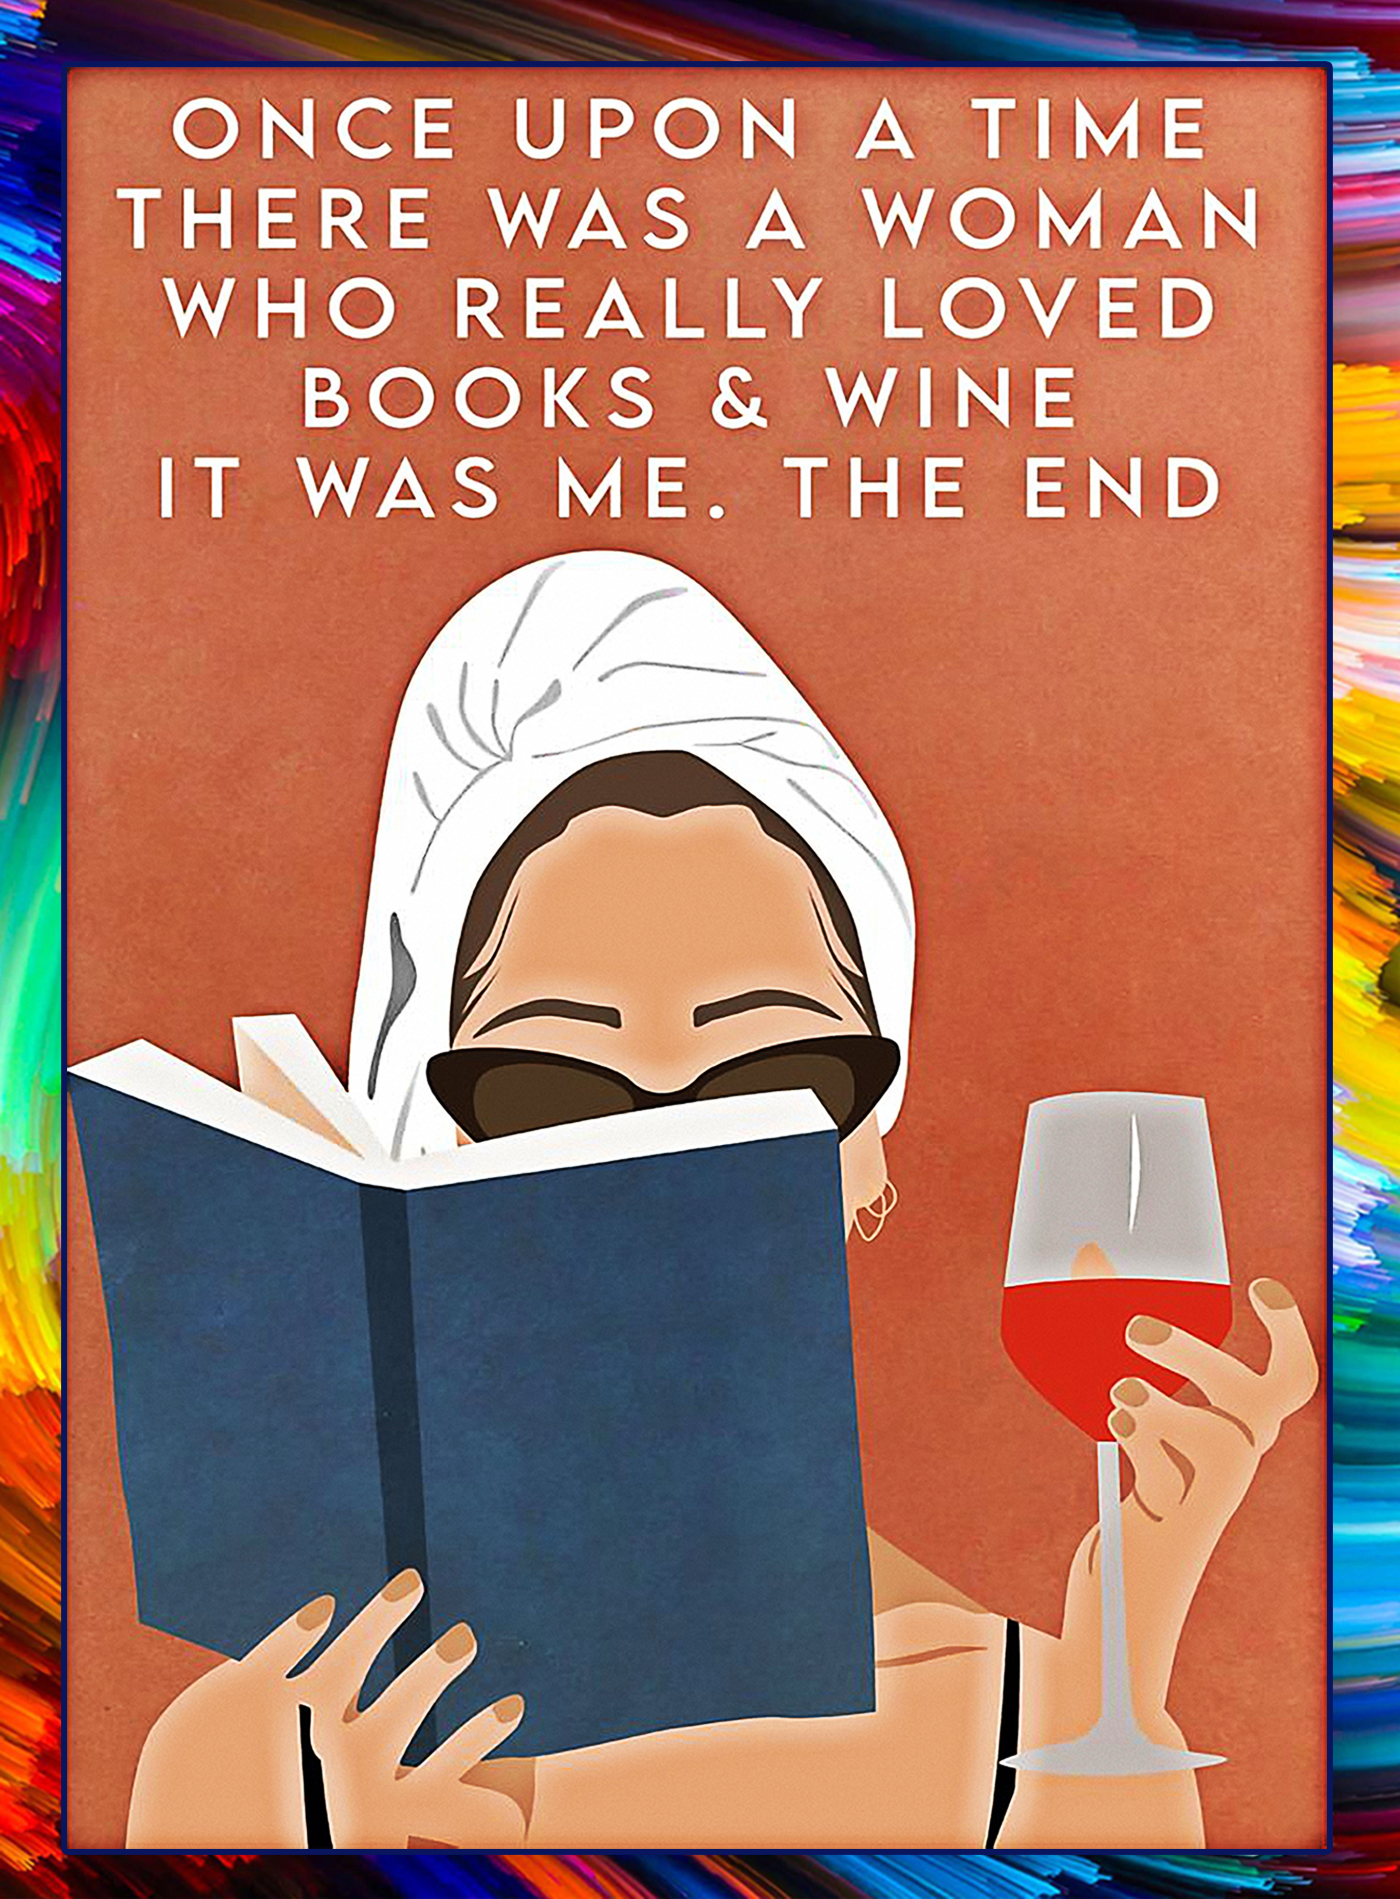 Once upon a time there was a woman who really loved books and wine poster - A1